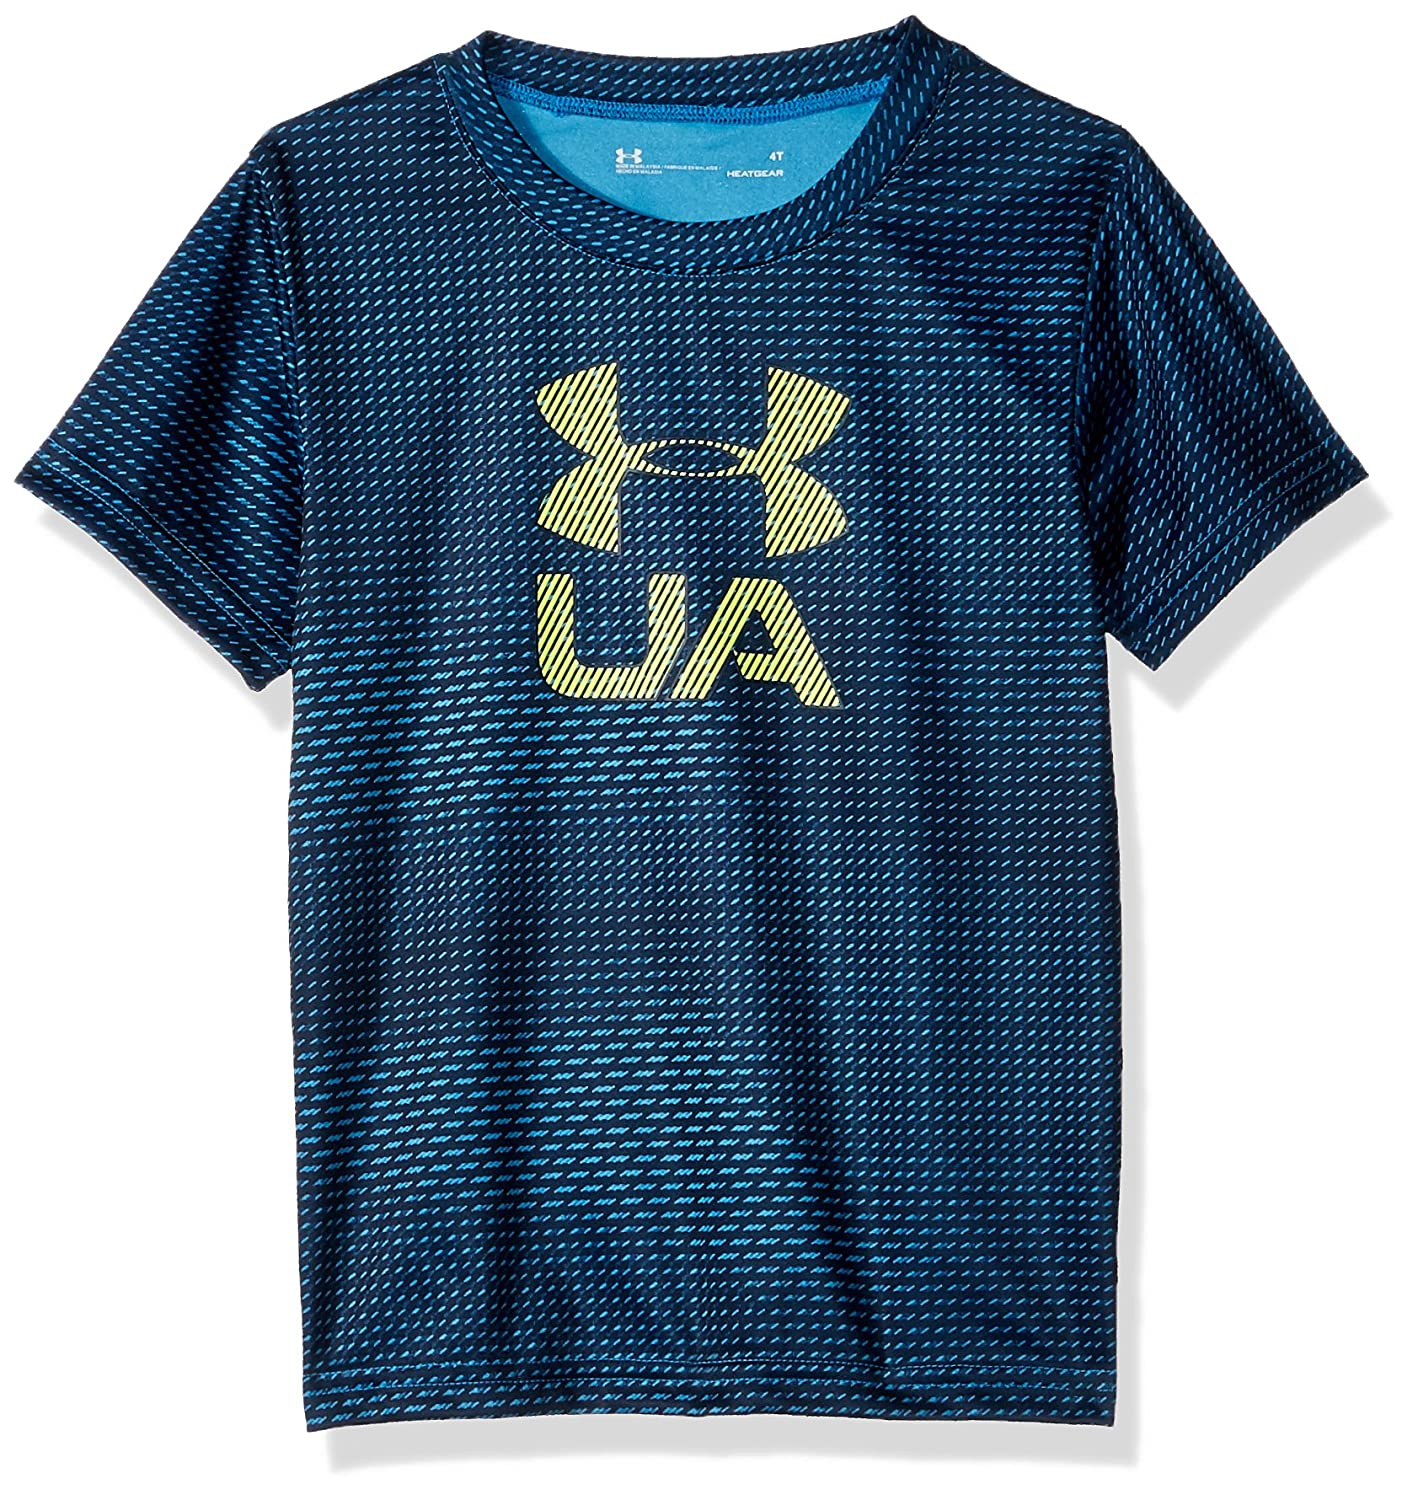 Under Armour Boys' Big Logo Short Sleeve Tee Shirt 2051662